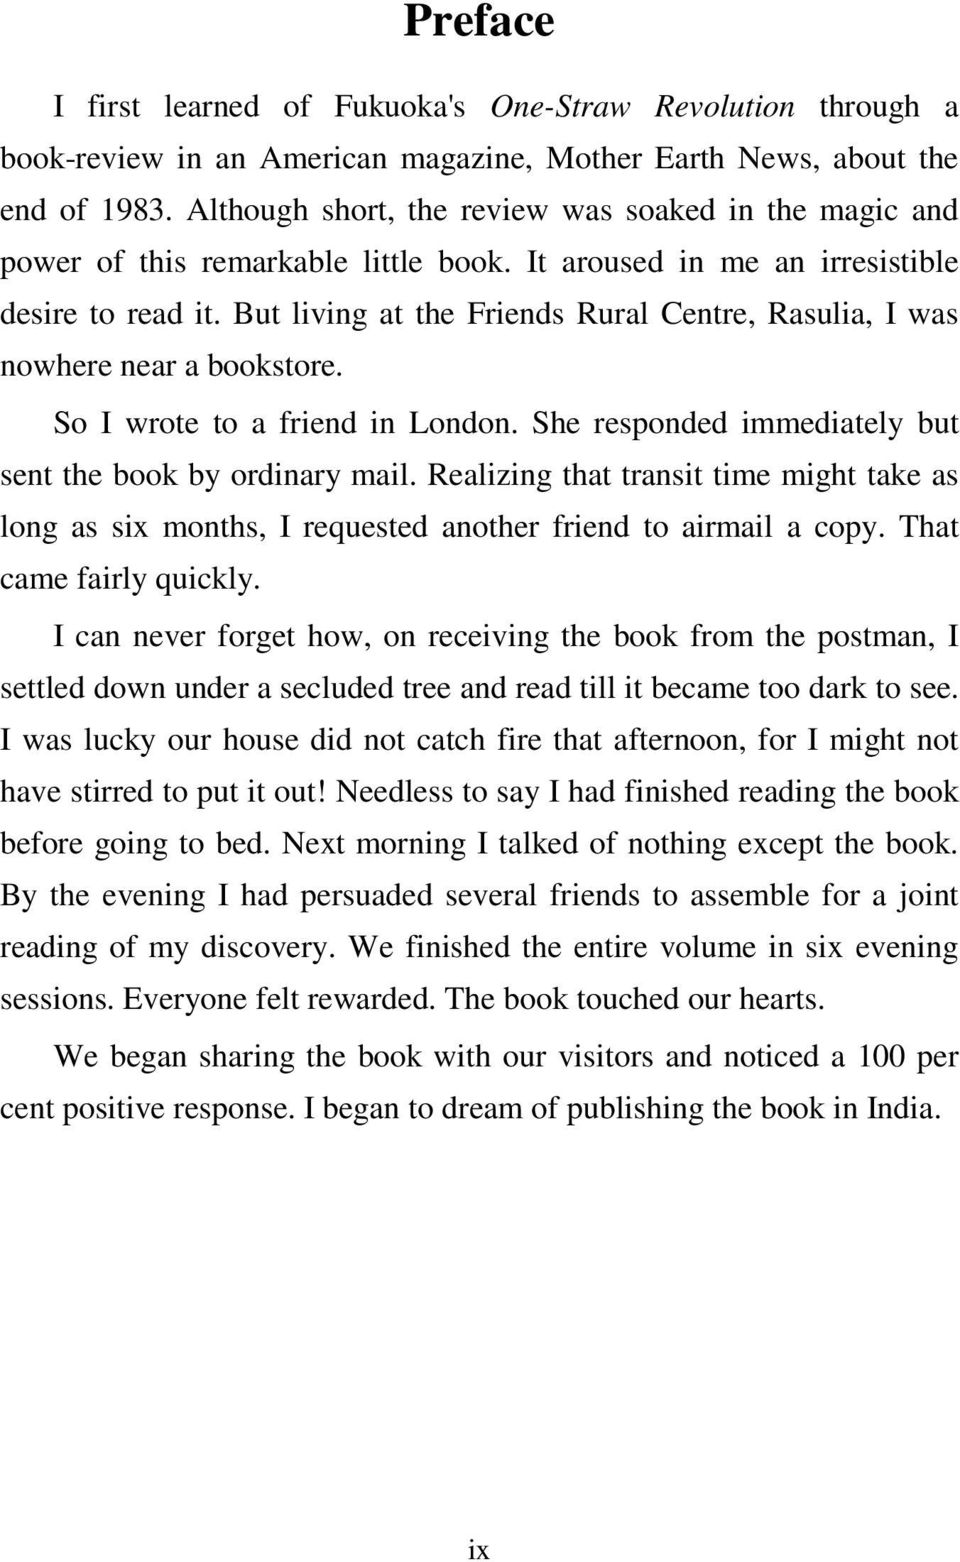 But living at the Friends Rural Centre, Rasulia, I was nowhere near a bookstore. So I wrote to a friend in London. She responded immediately but sent the book by ordinary mail.